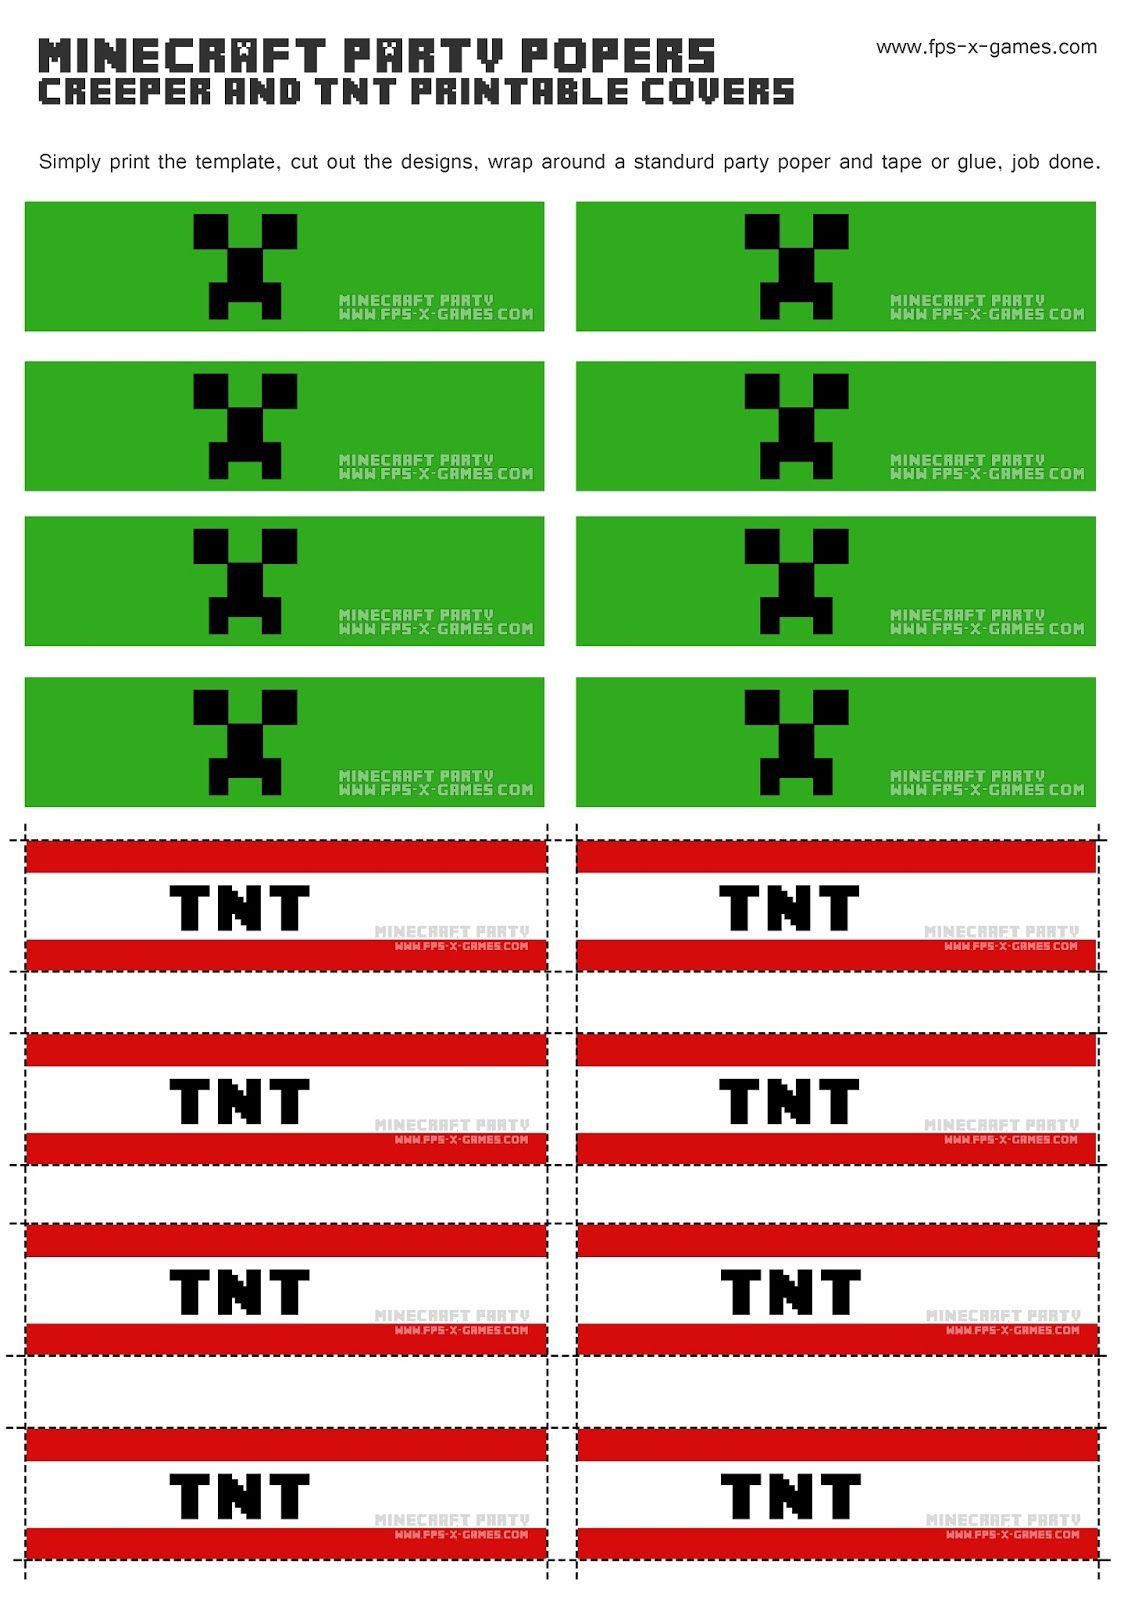 Create Minecraft Themed Party Popper Covers With FPSXGames Creeper And TNT Printable Template